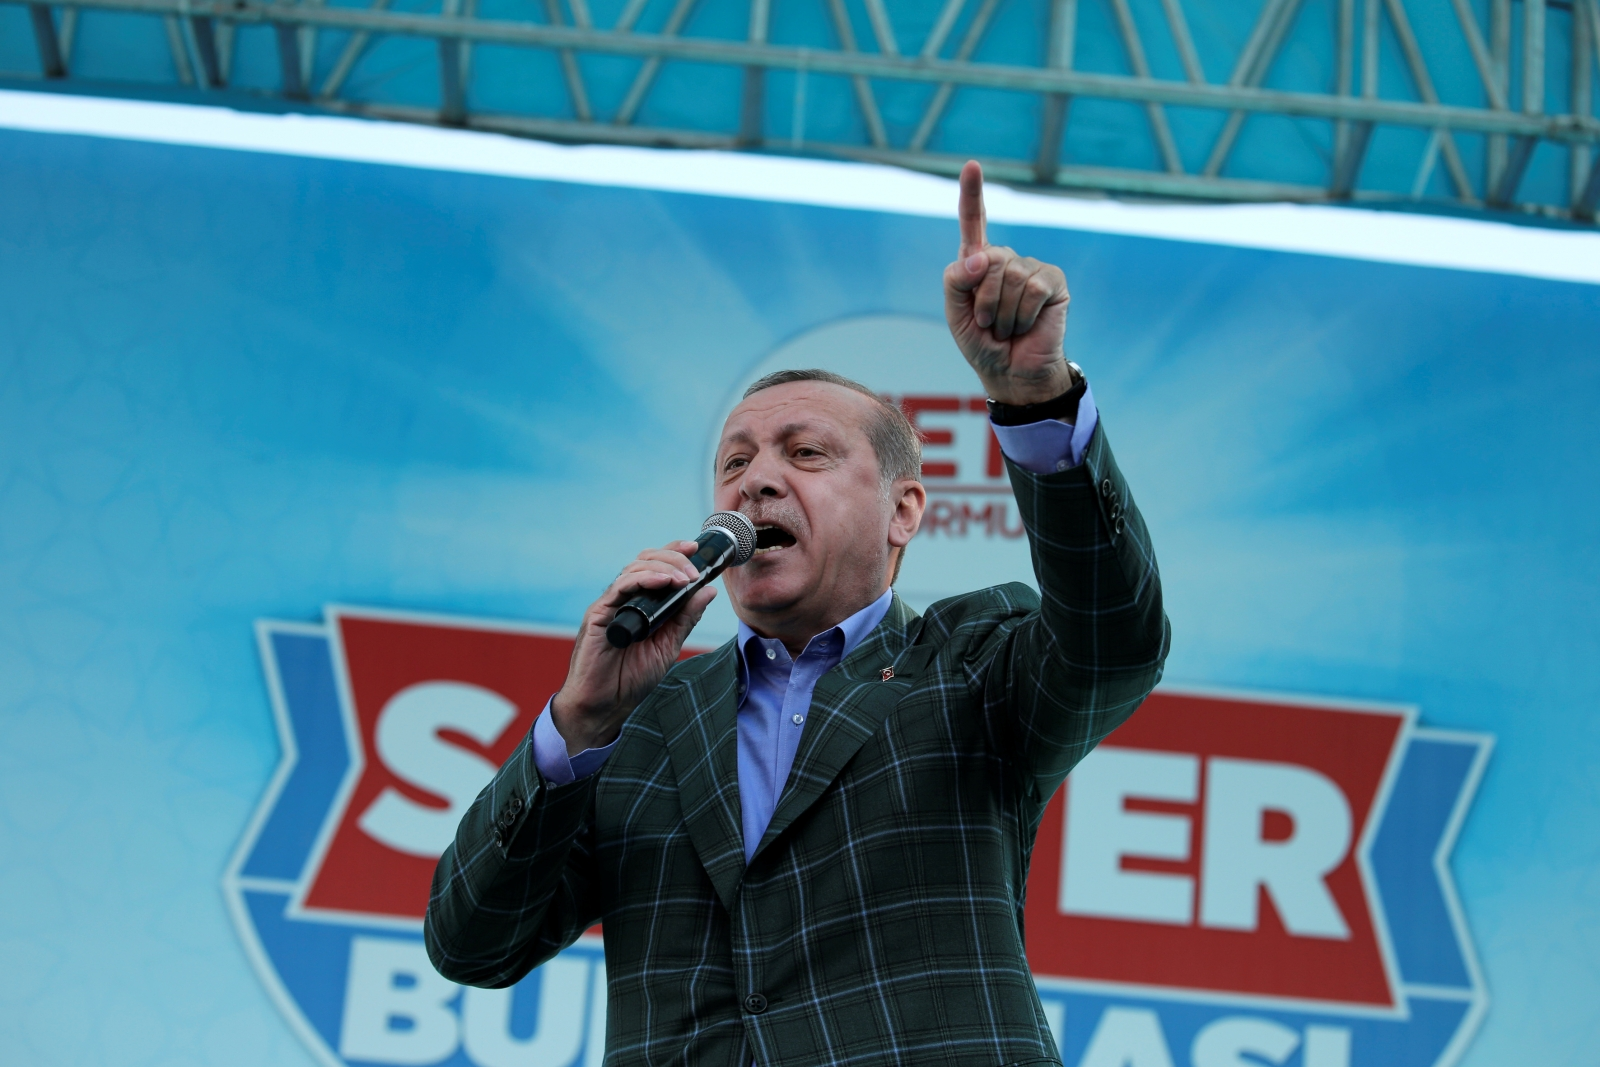 Turkey's Opposition CHP to Formally Demand Nullification of Referendum